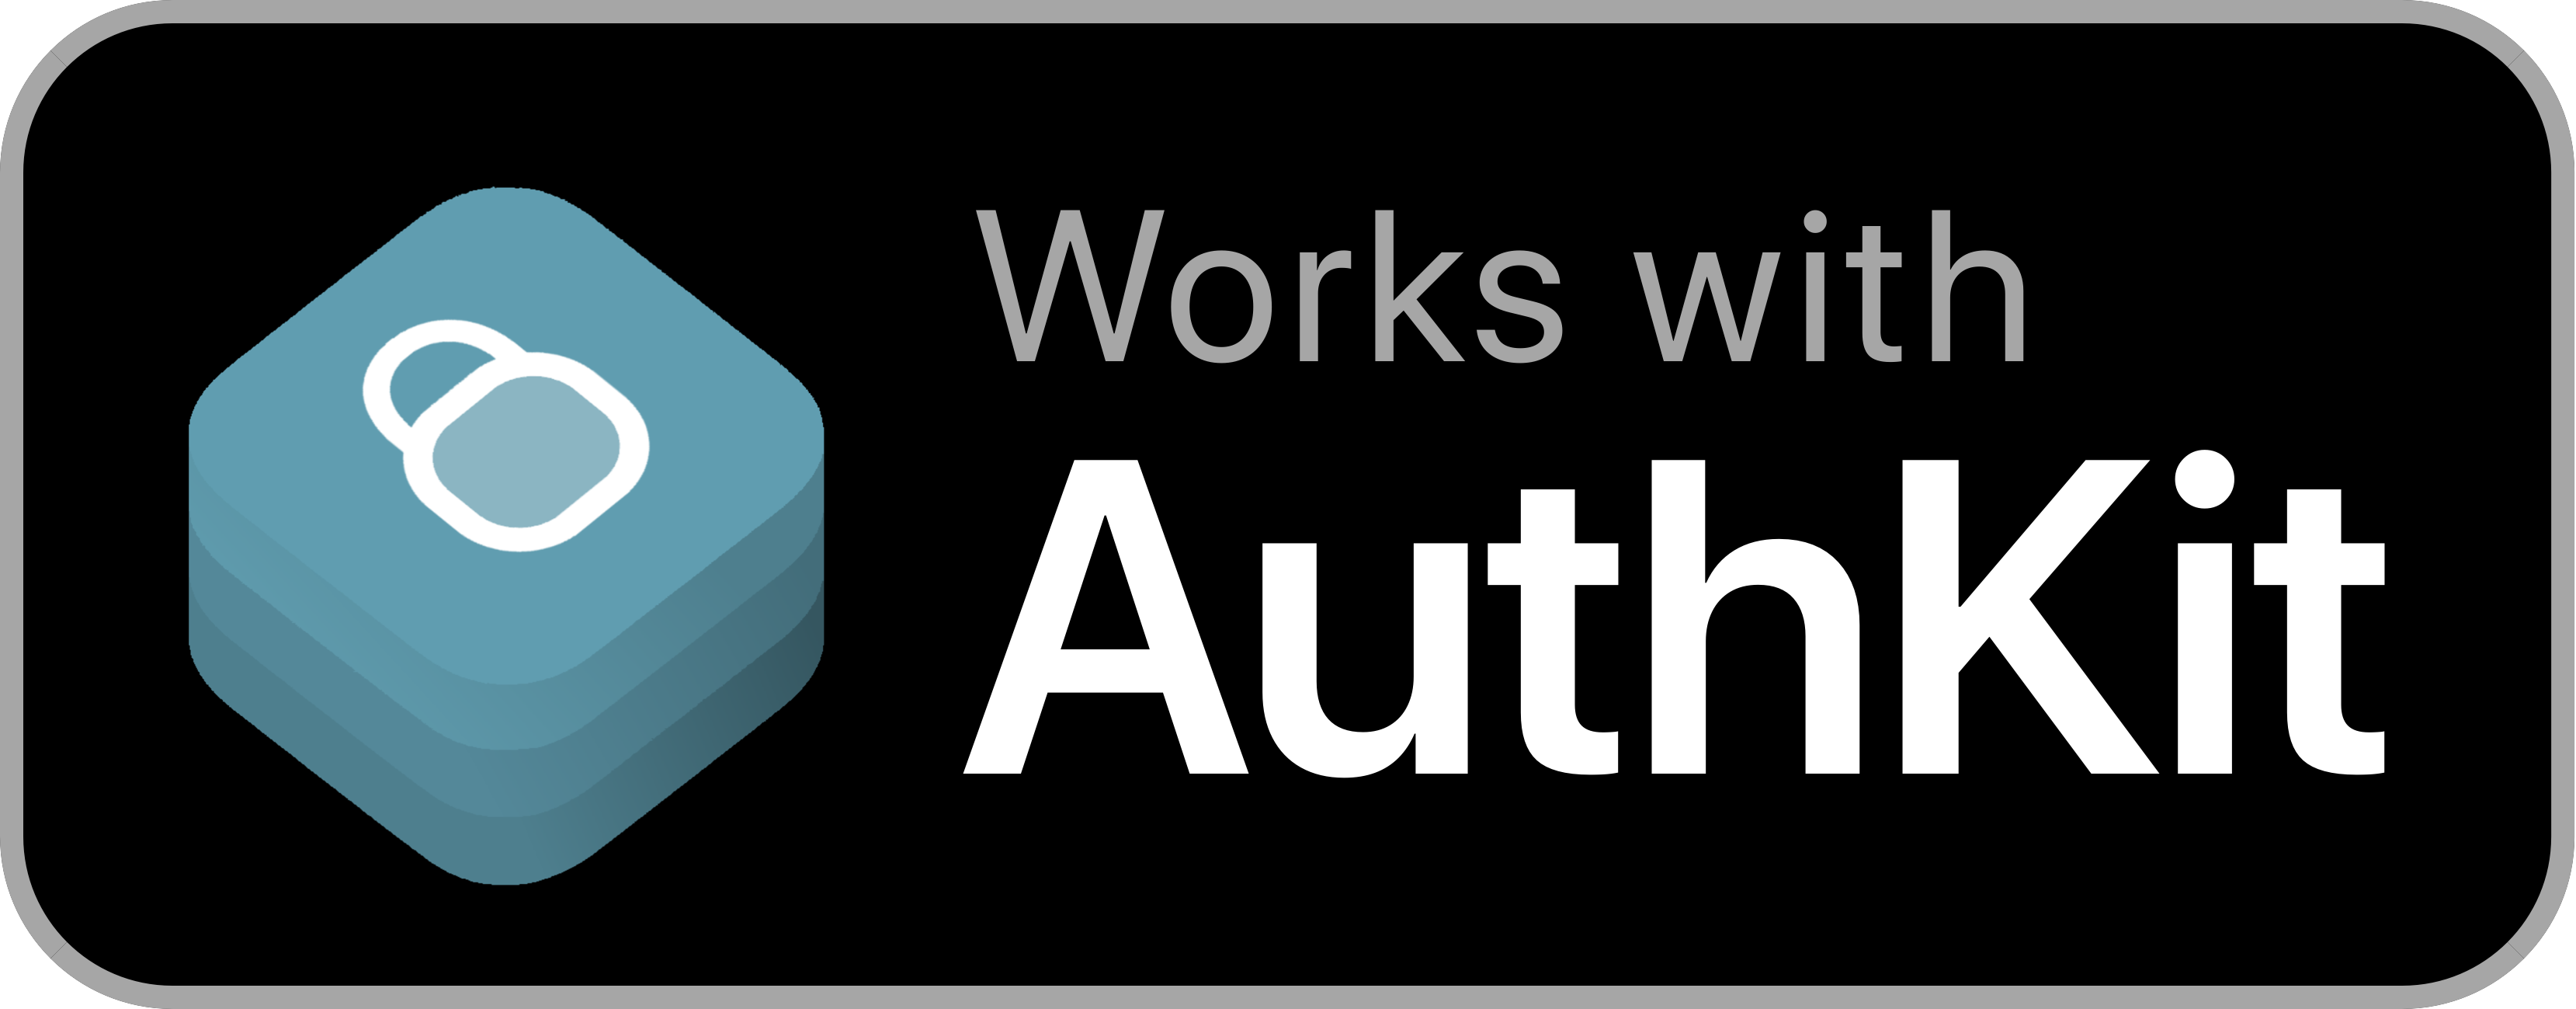 Works with AuthKit